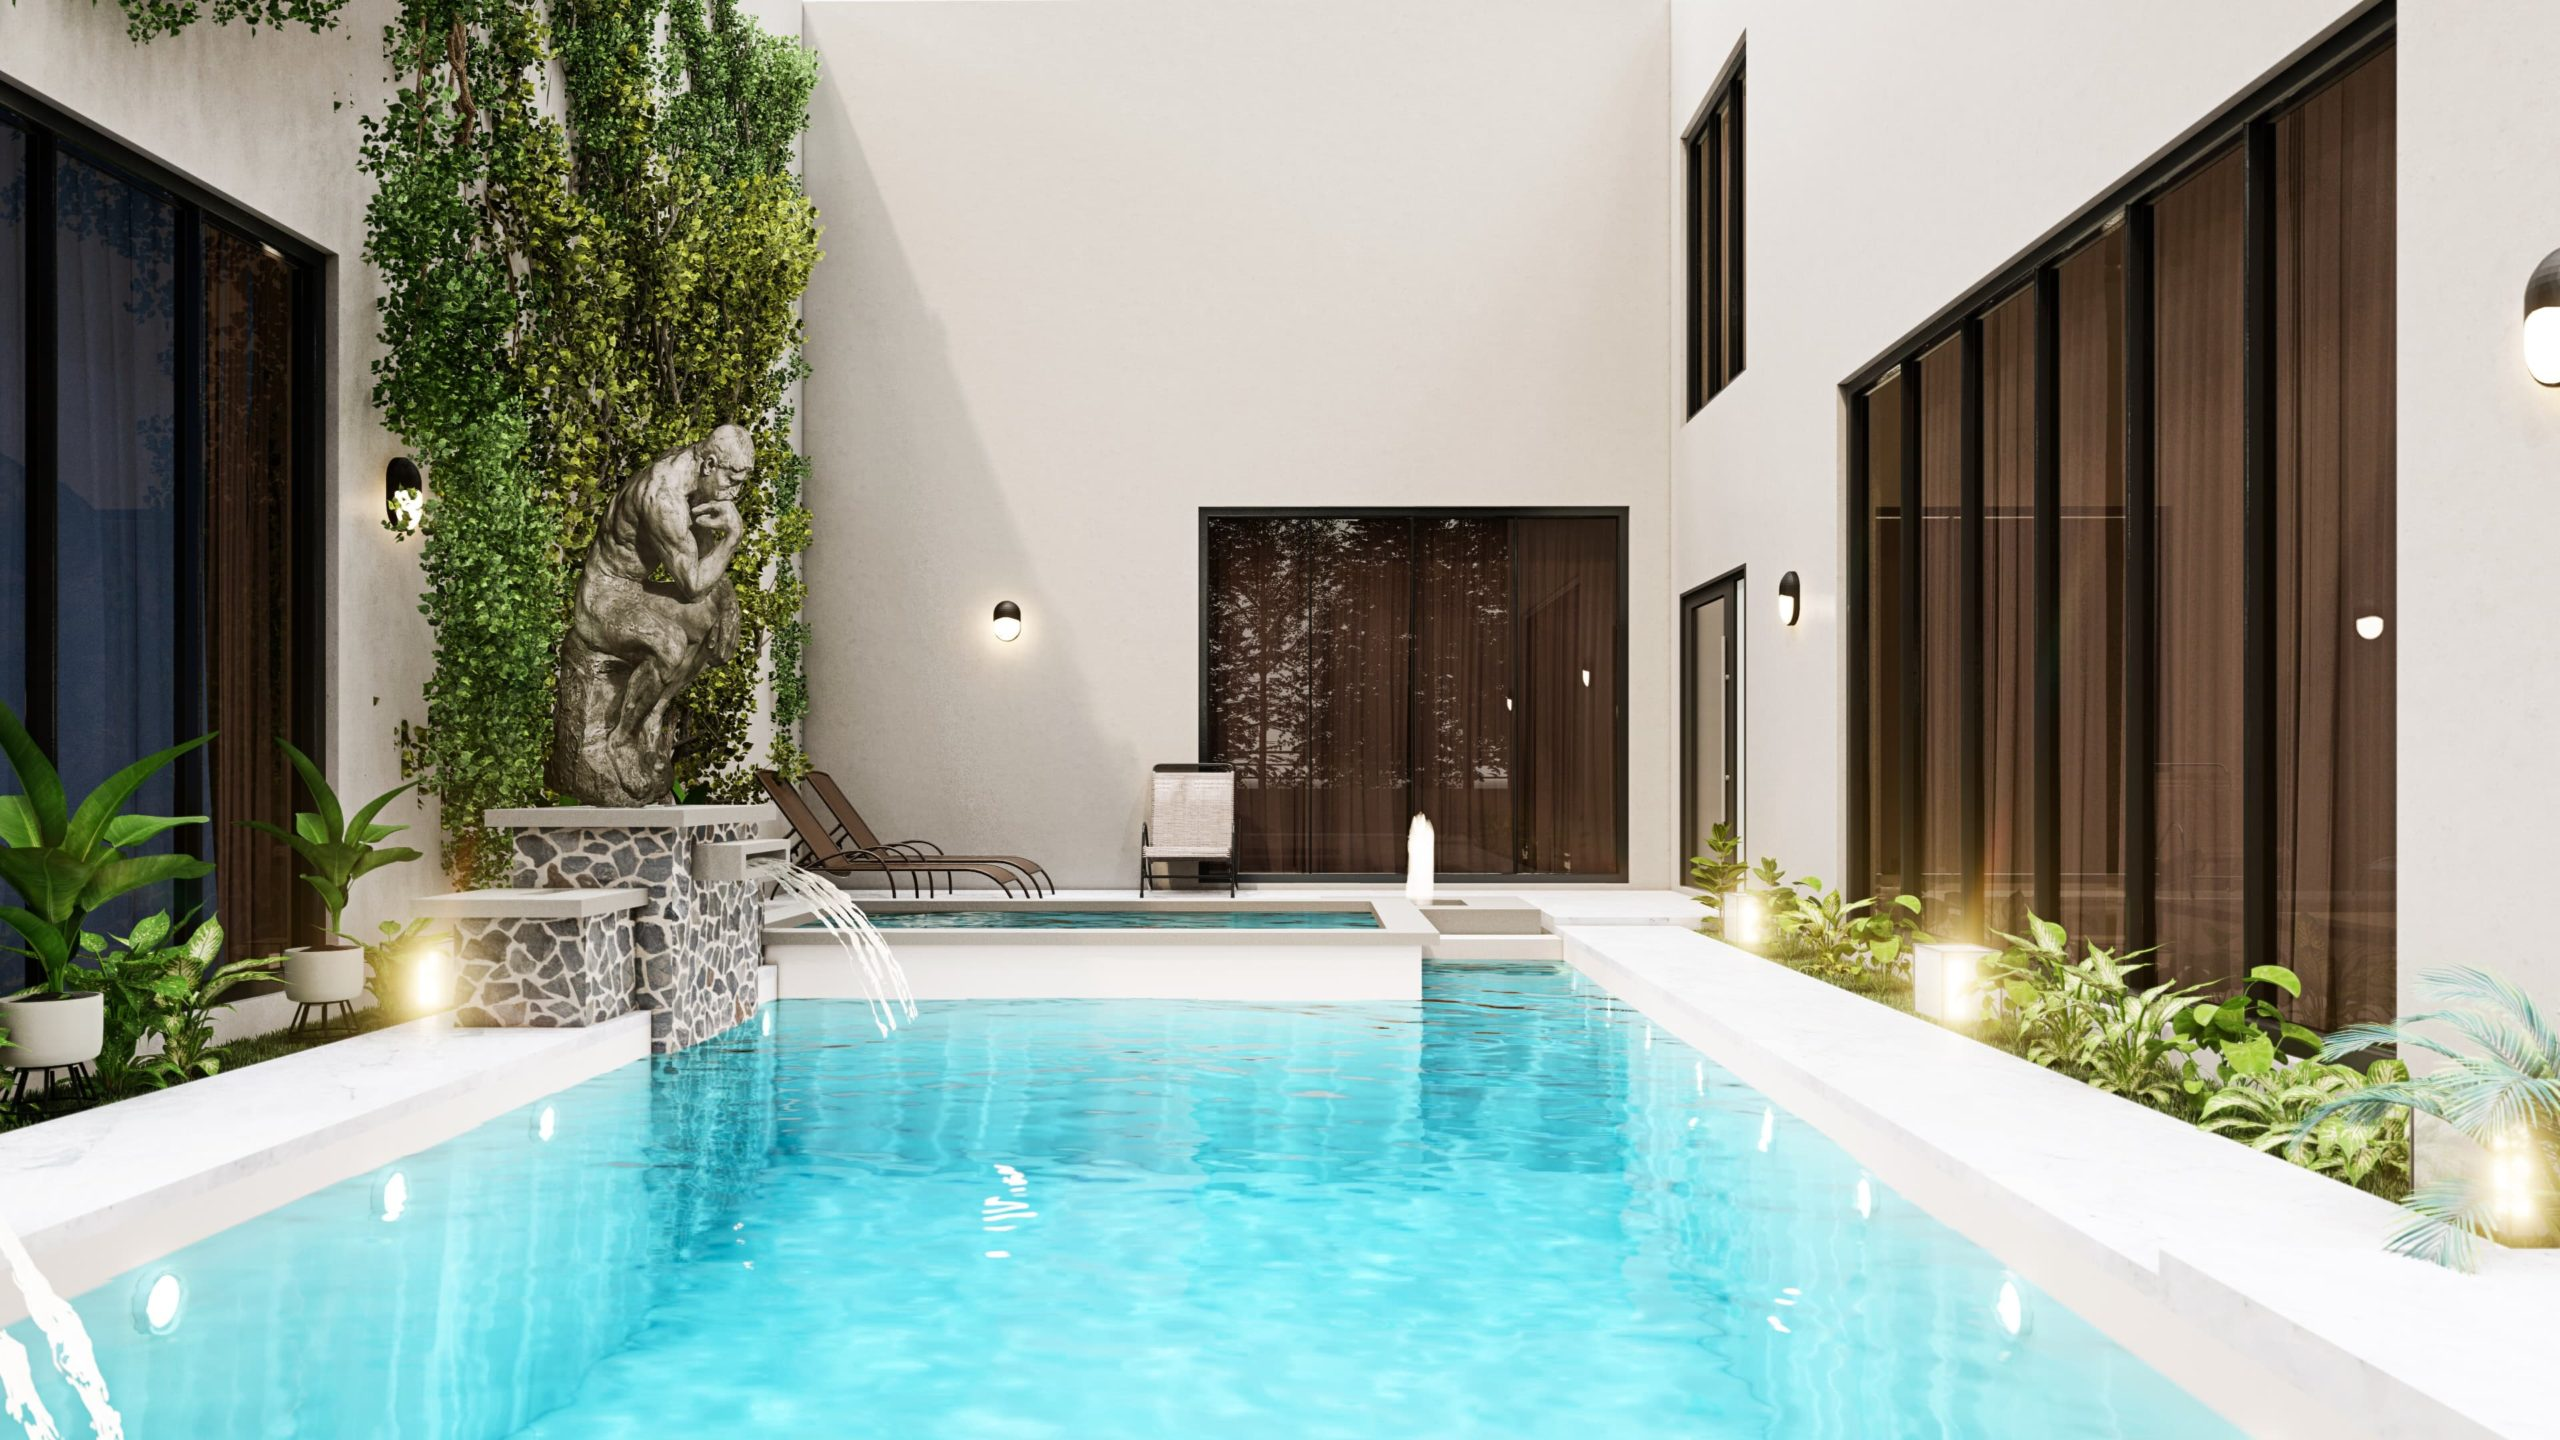 How Much Does It Cost To Heat a Swimming Pool?